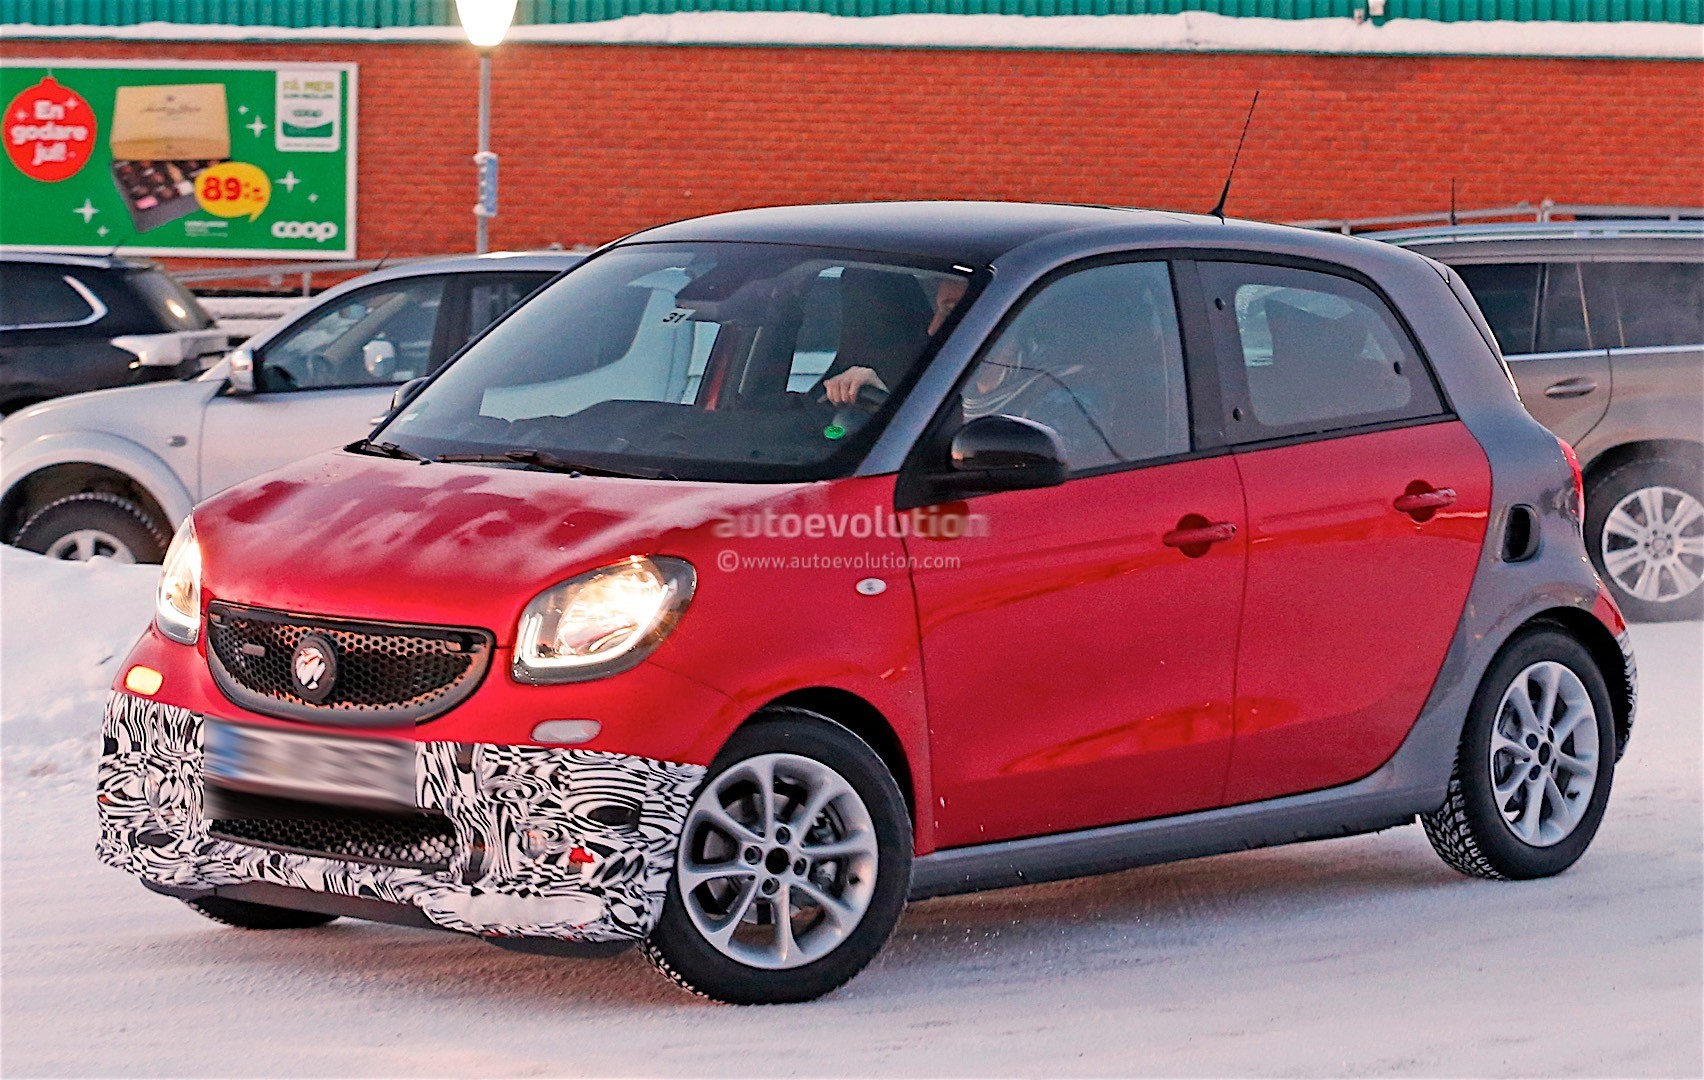 smart forfour brabus chooses red for winter testing looks ready to roll out autoevolution. Black Bedroom Furniture Sets. Home Design Ideas